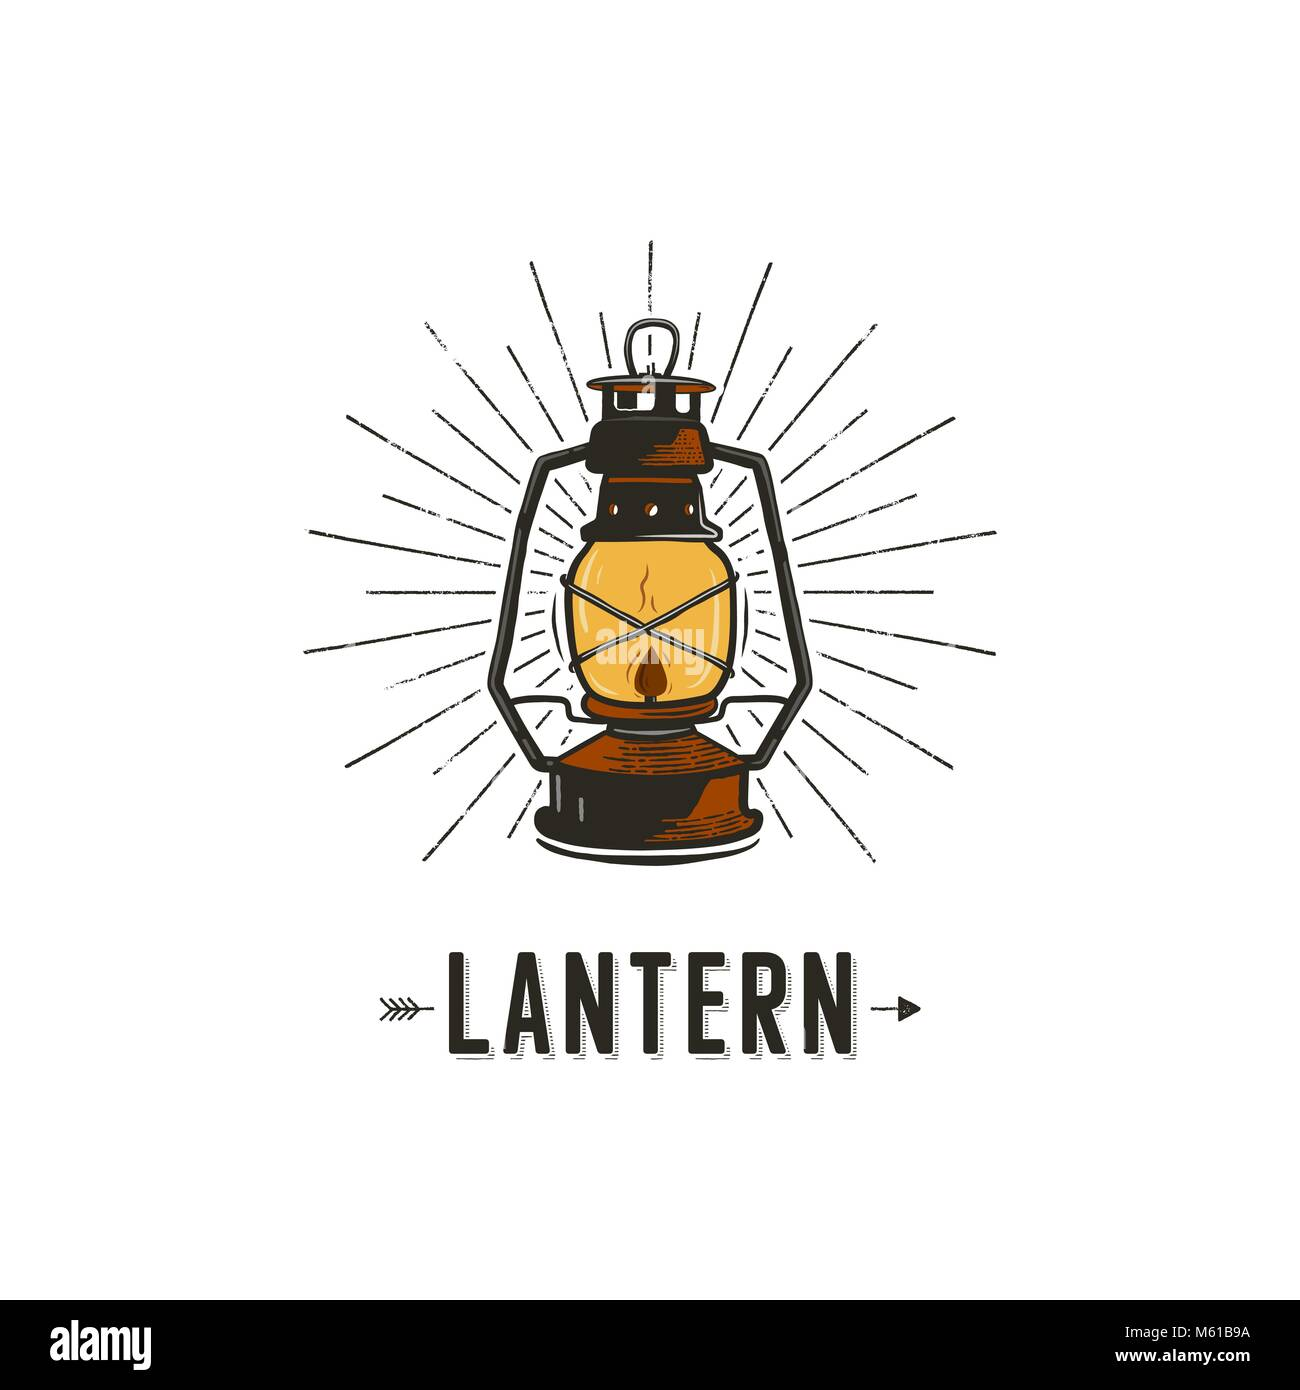 Vintage hand-drawn lantern concept. Perfect for logo design, badge, camping labels. Retro colors. Symbol for outdoor - Stock Vector